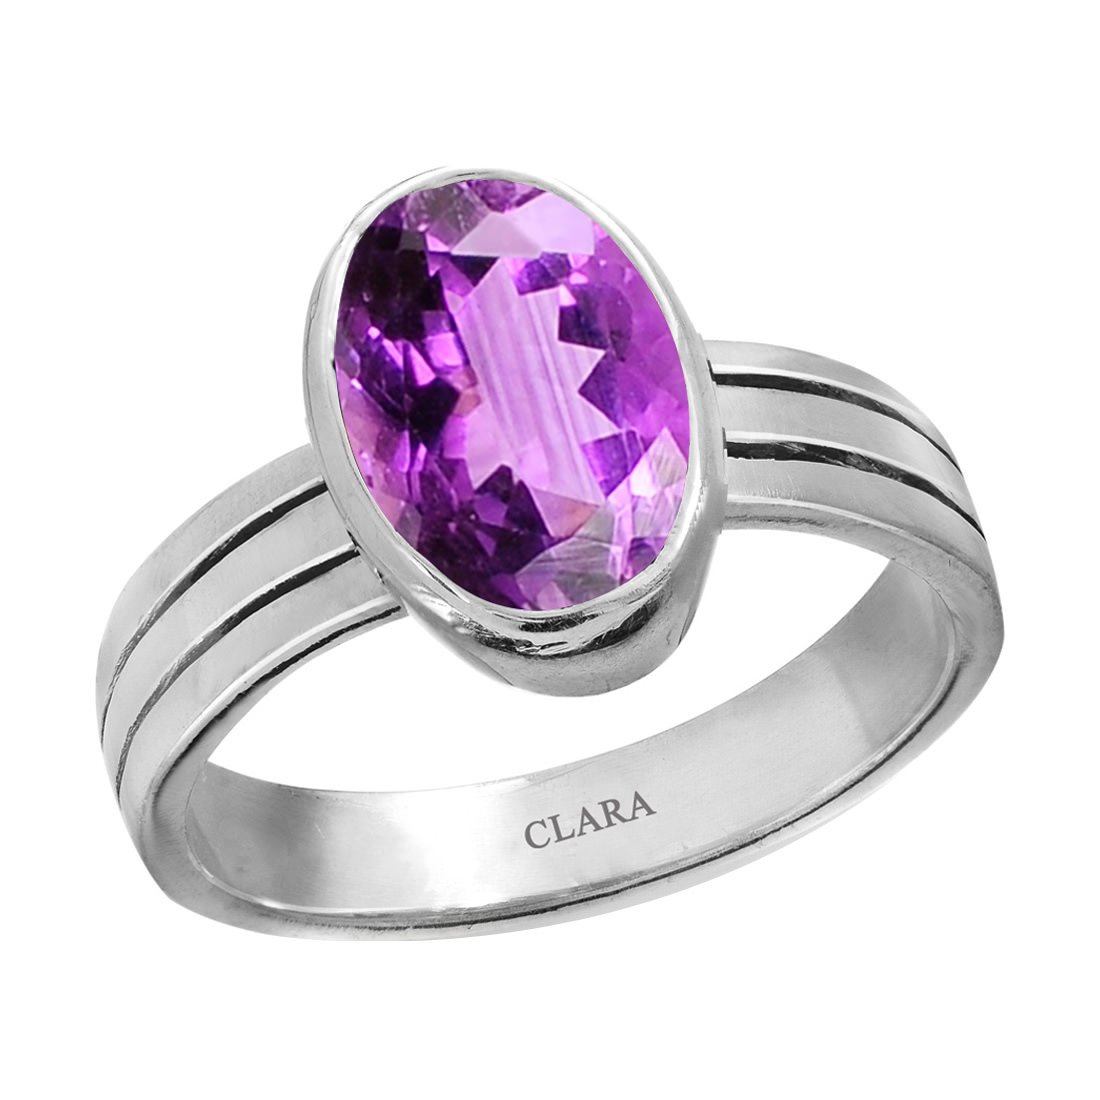 CLARA Certified Amethyst 8.3cts or 9.25ratti original stone Stunning Sterling Silver Astrological Ring for Men and Women Katela